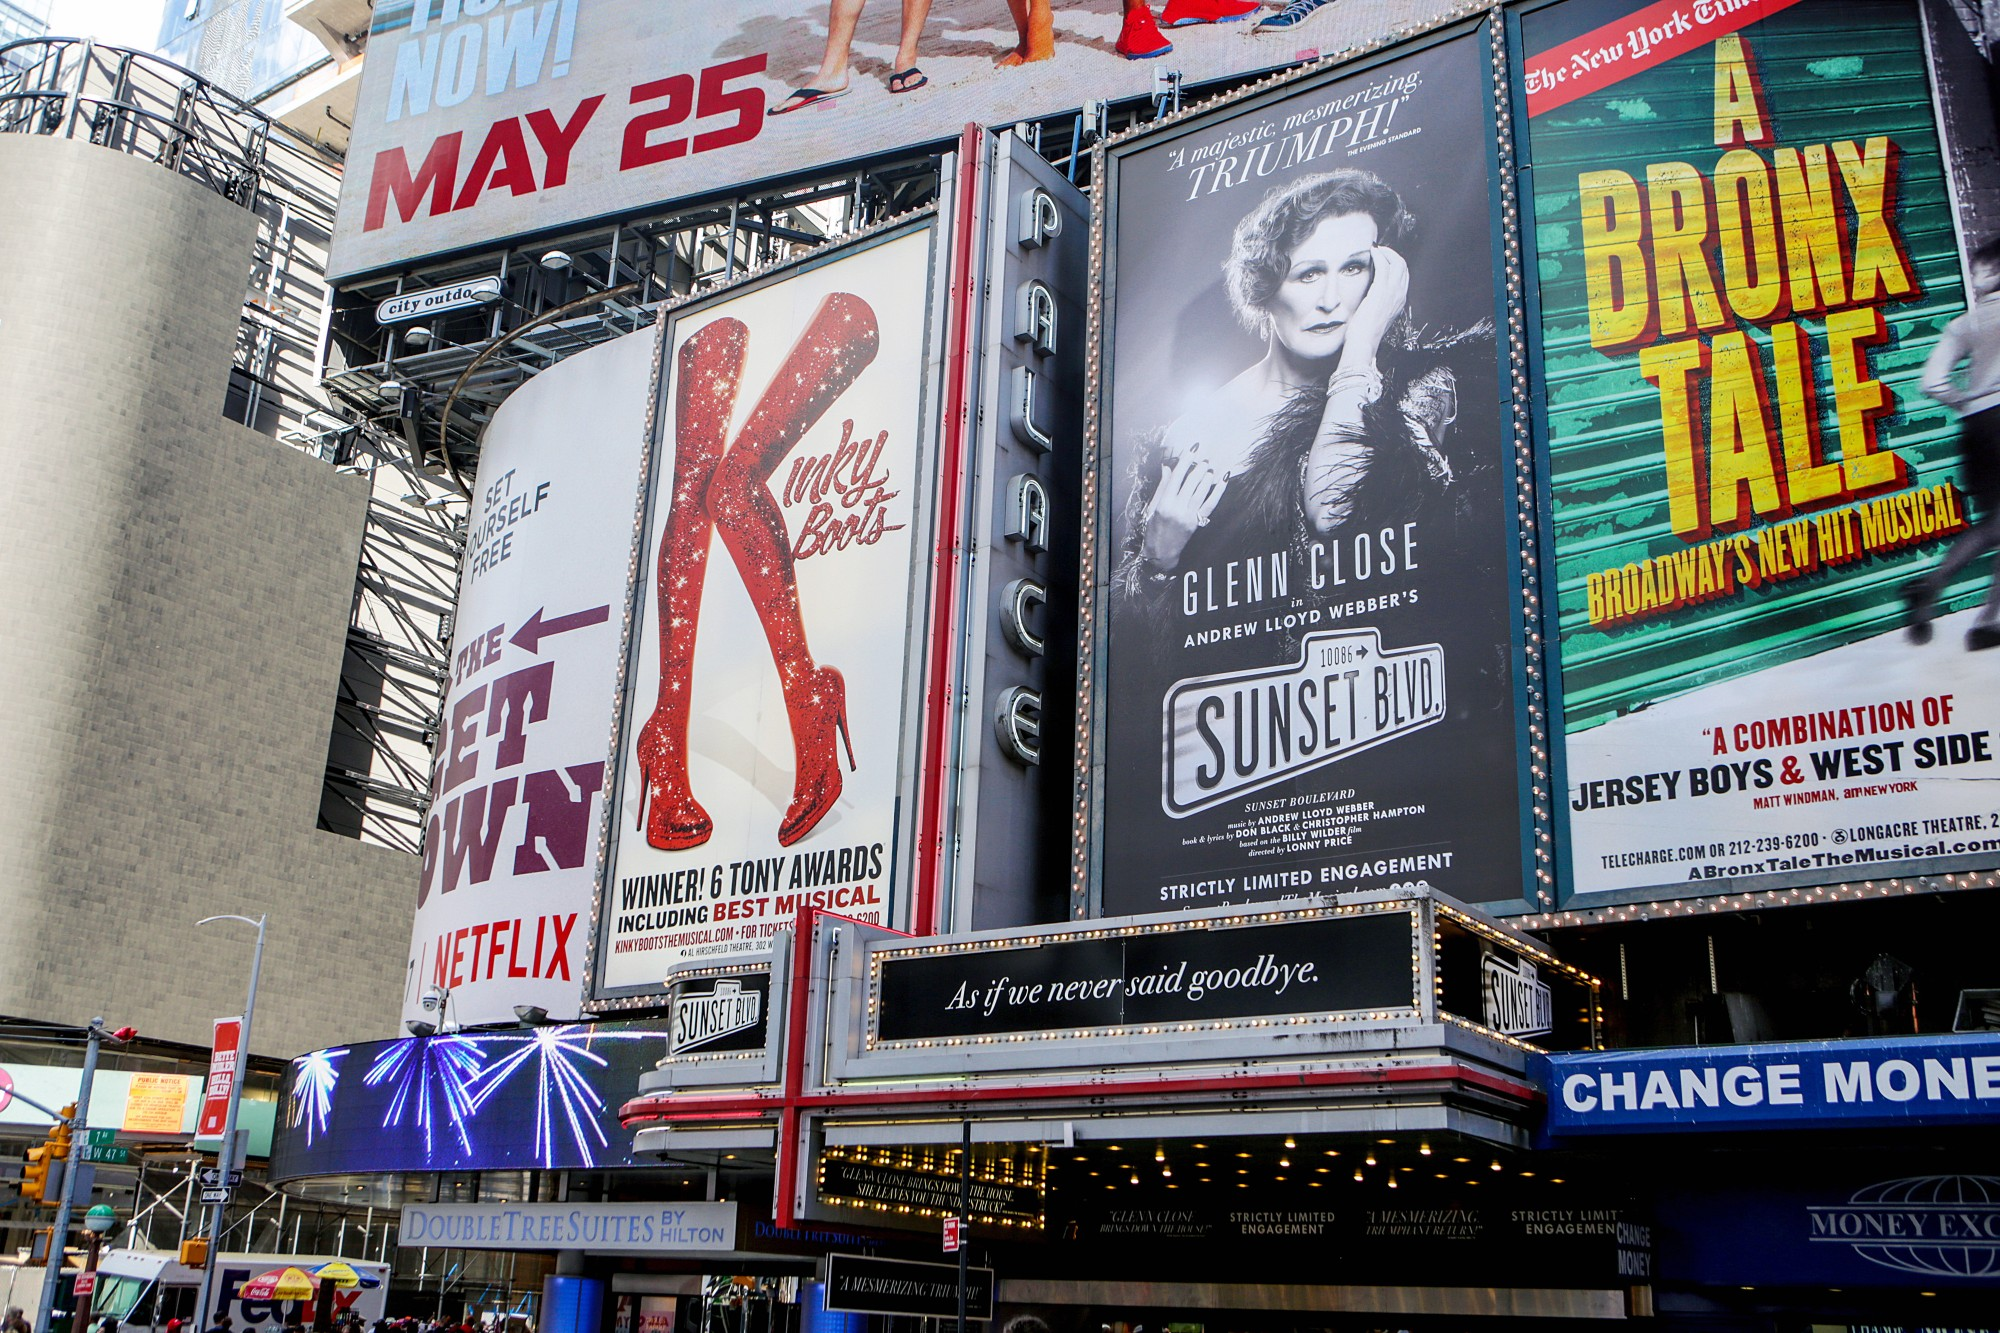 Some Broadway billboards lighting up Times Square